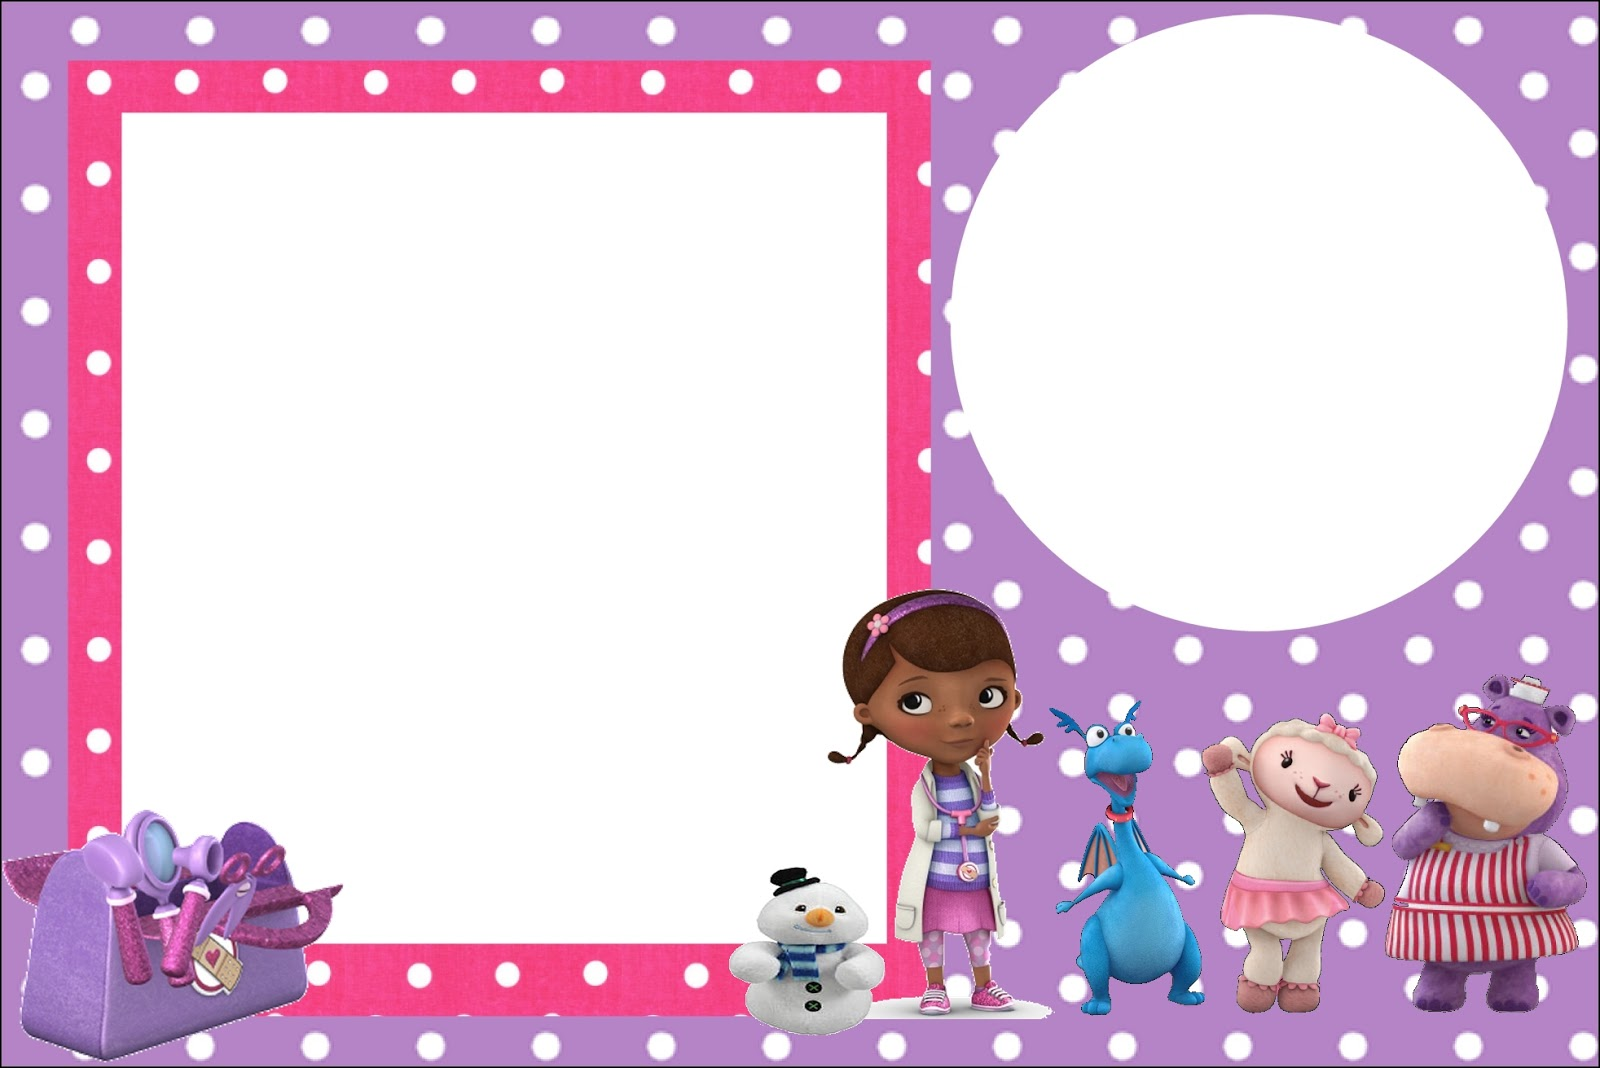 Doc Mcstuffins Invitations with luxury invitations example